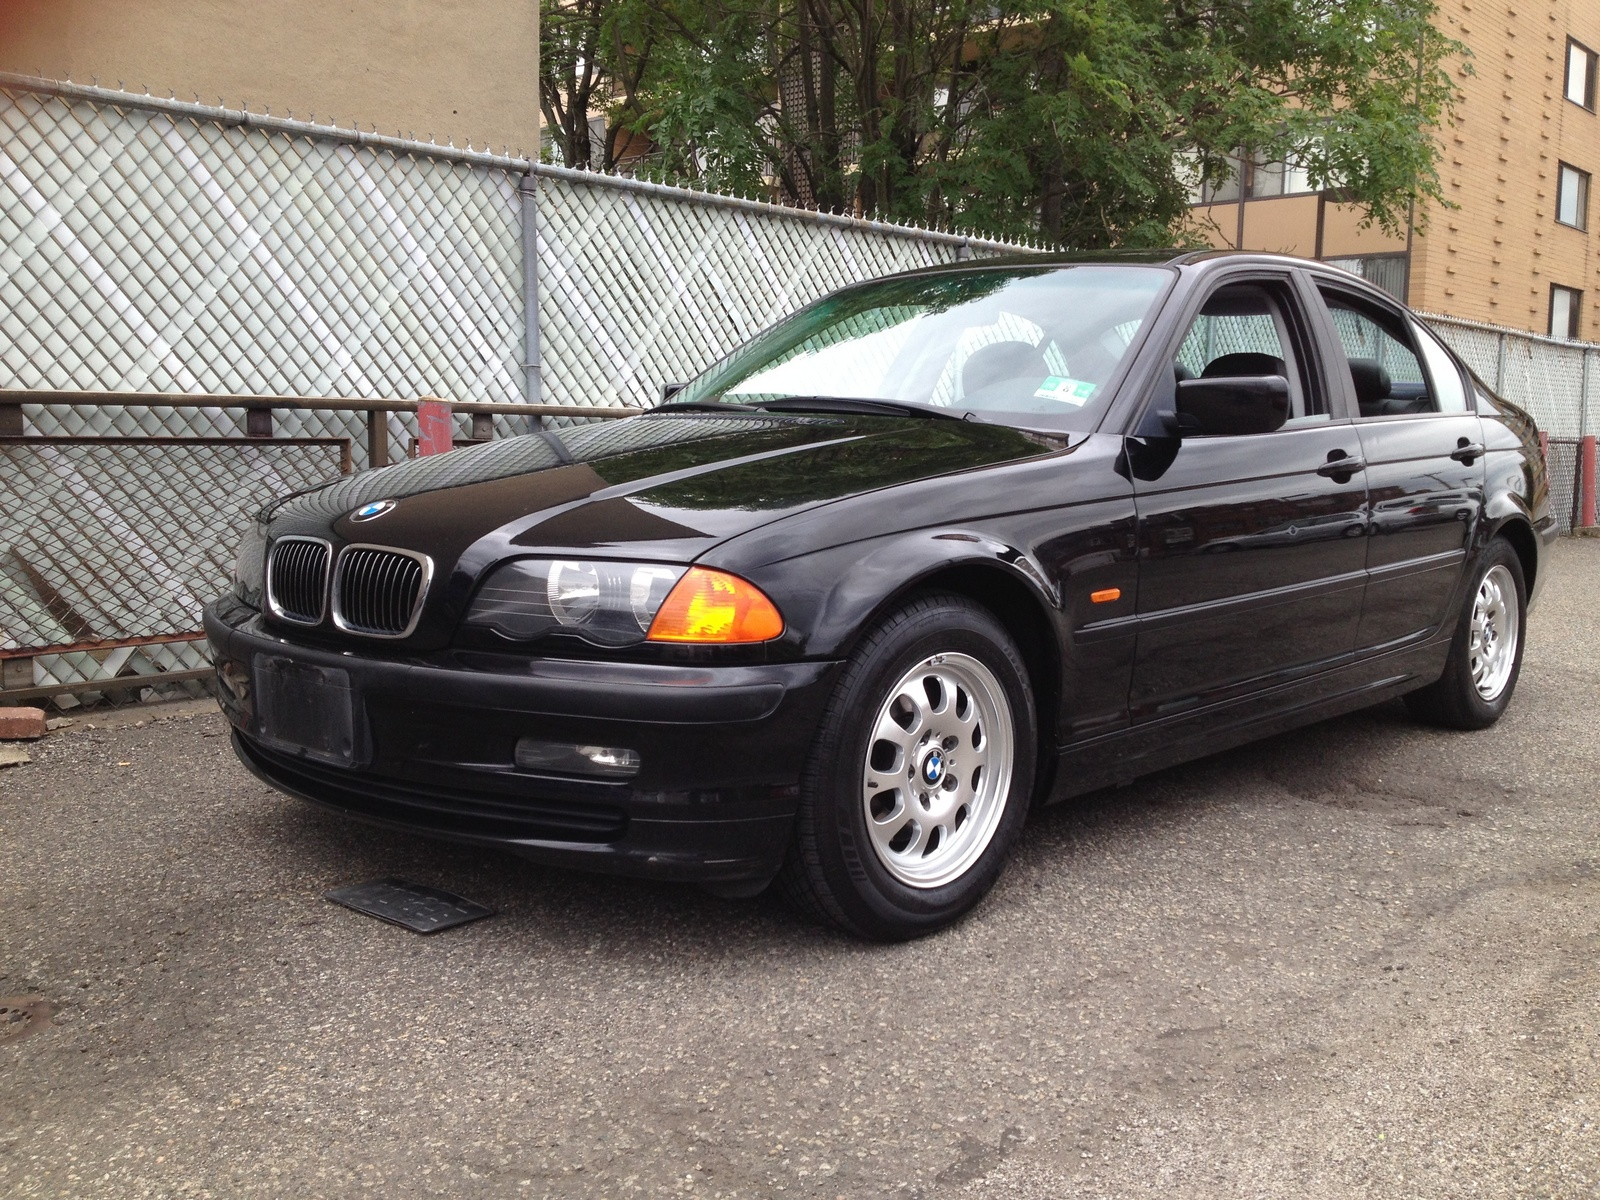 BMW 3 series 330Ci 1999 photo - 1